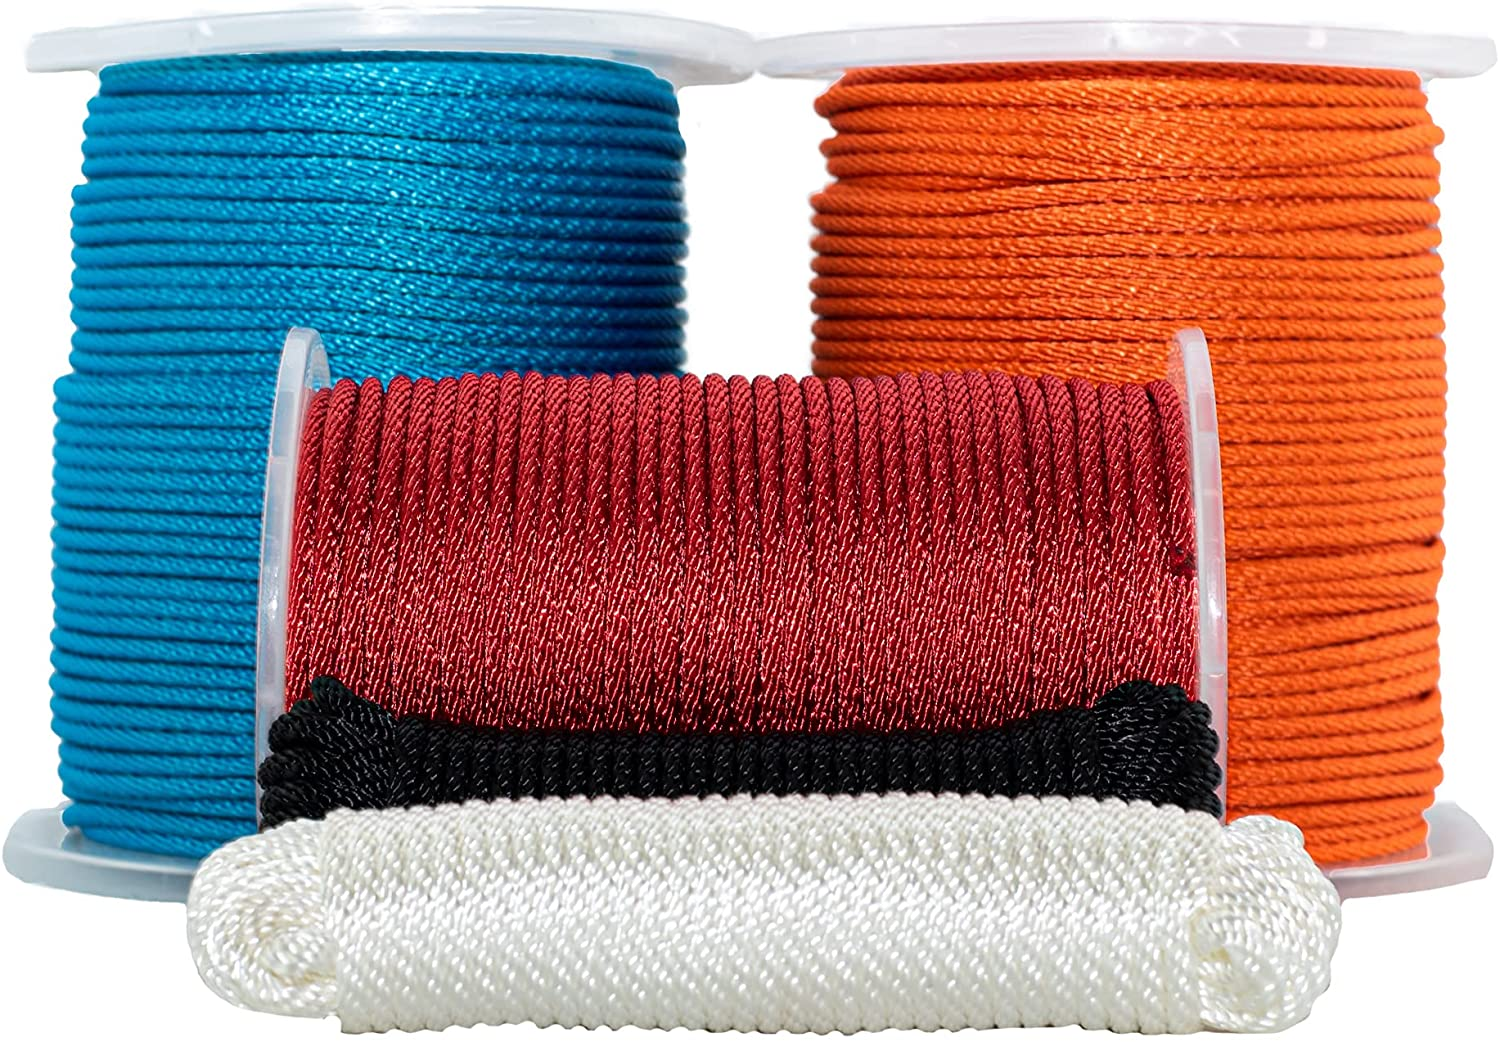 SGT KNOTS Solid Braid Nylon for Max 86% OFF Don't miss the campaign - Utility Rope Multipurpose